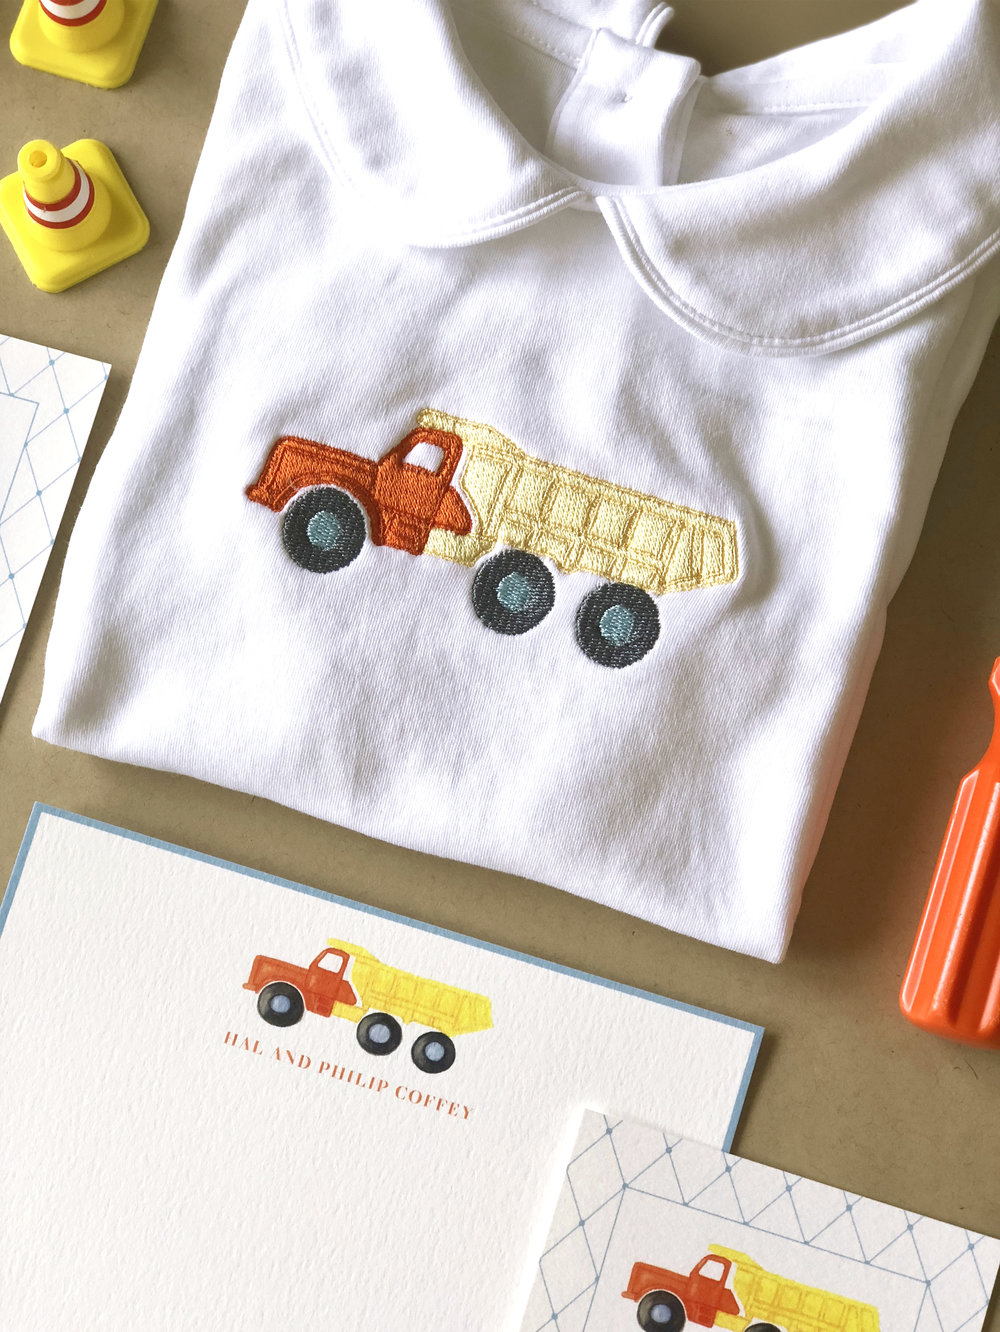 Dump Truck Embroidery by Calabash Card Co.